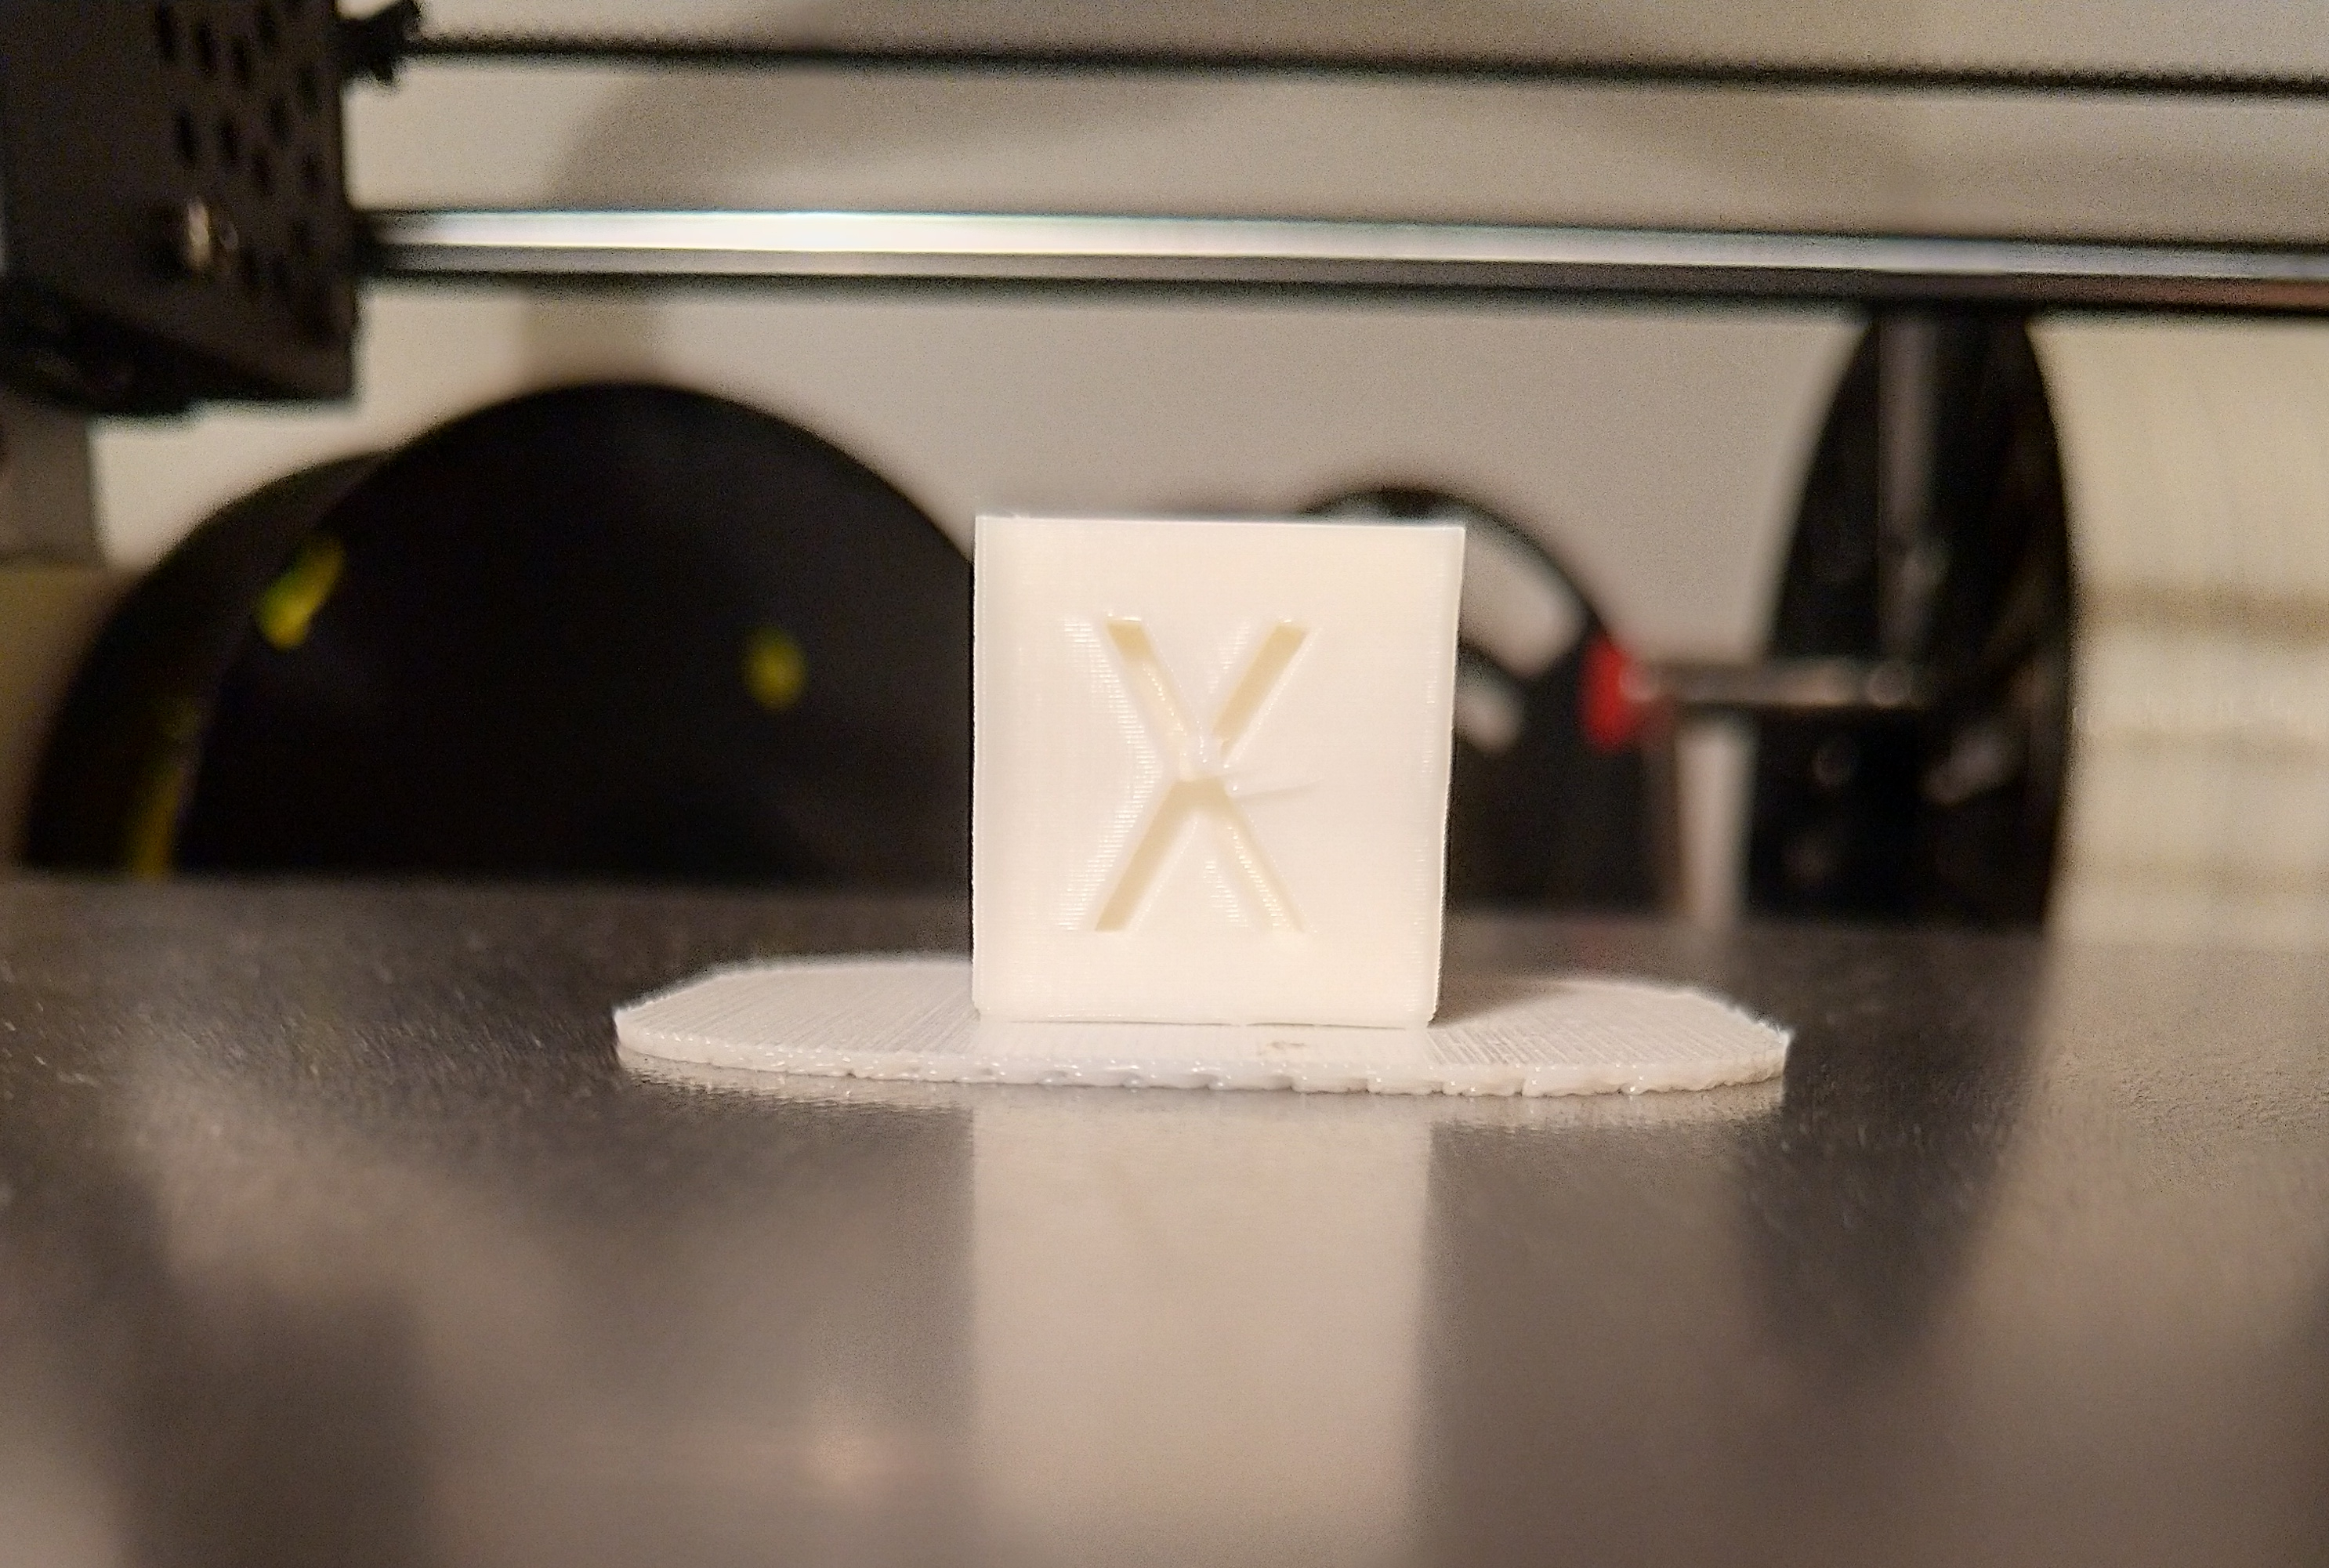 Print ABS on a Anycubic i3 Mega without warping or bending